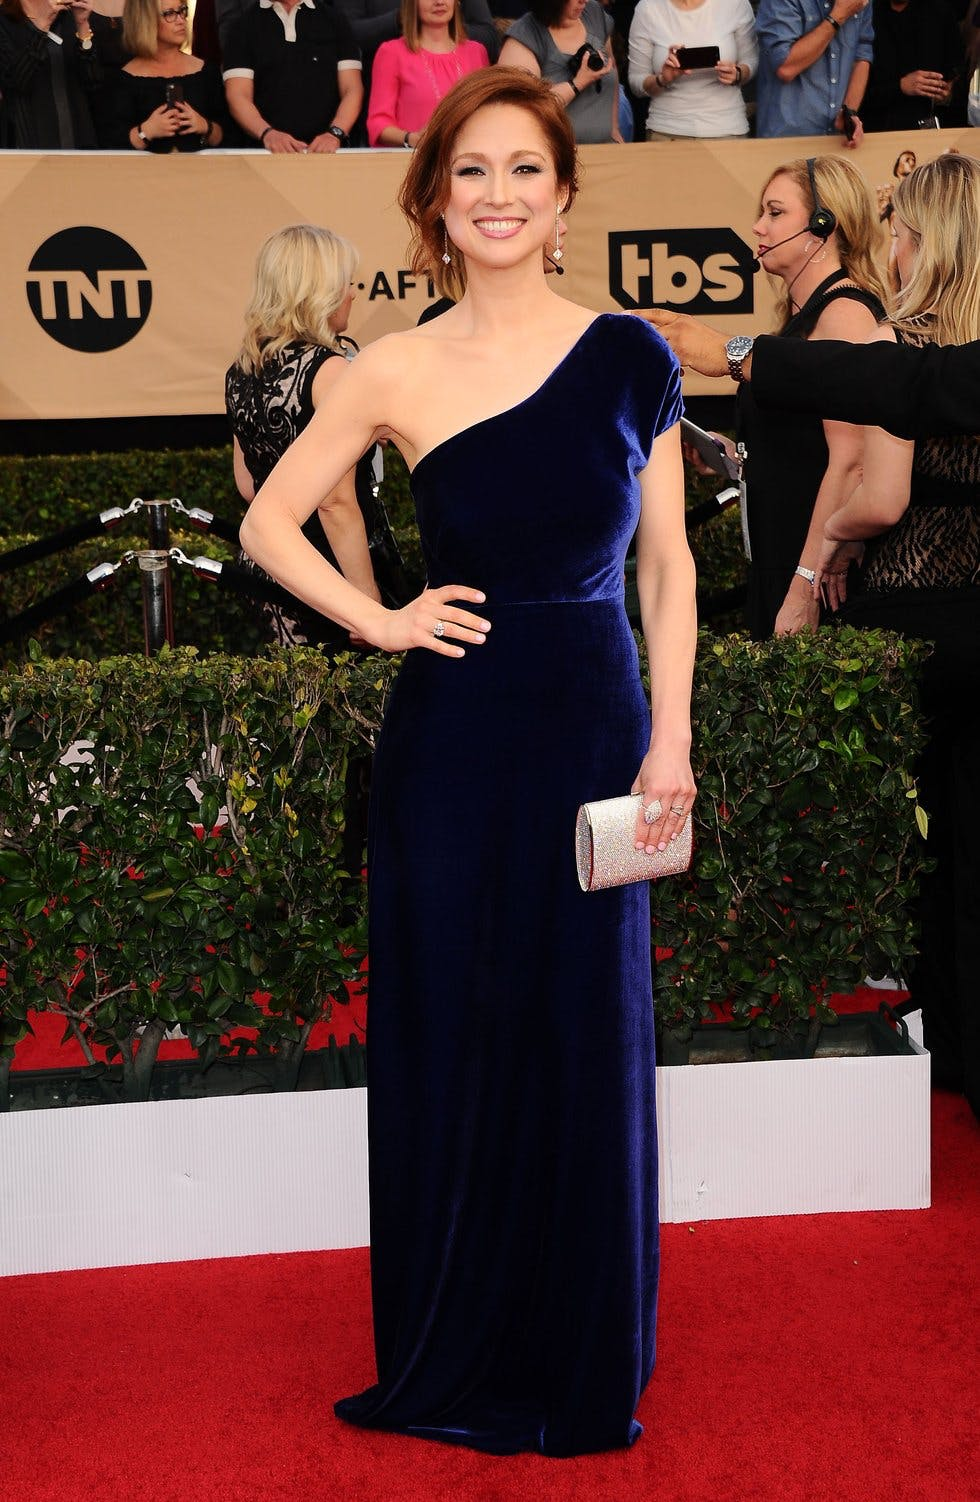 The Best Red Carpet Looks From The Sag Awards Stylist